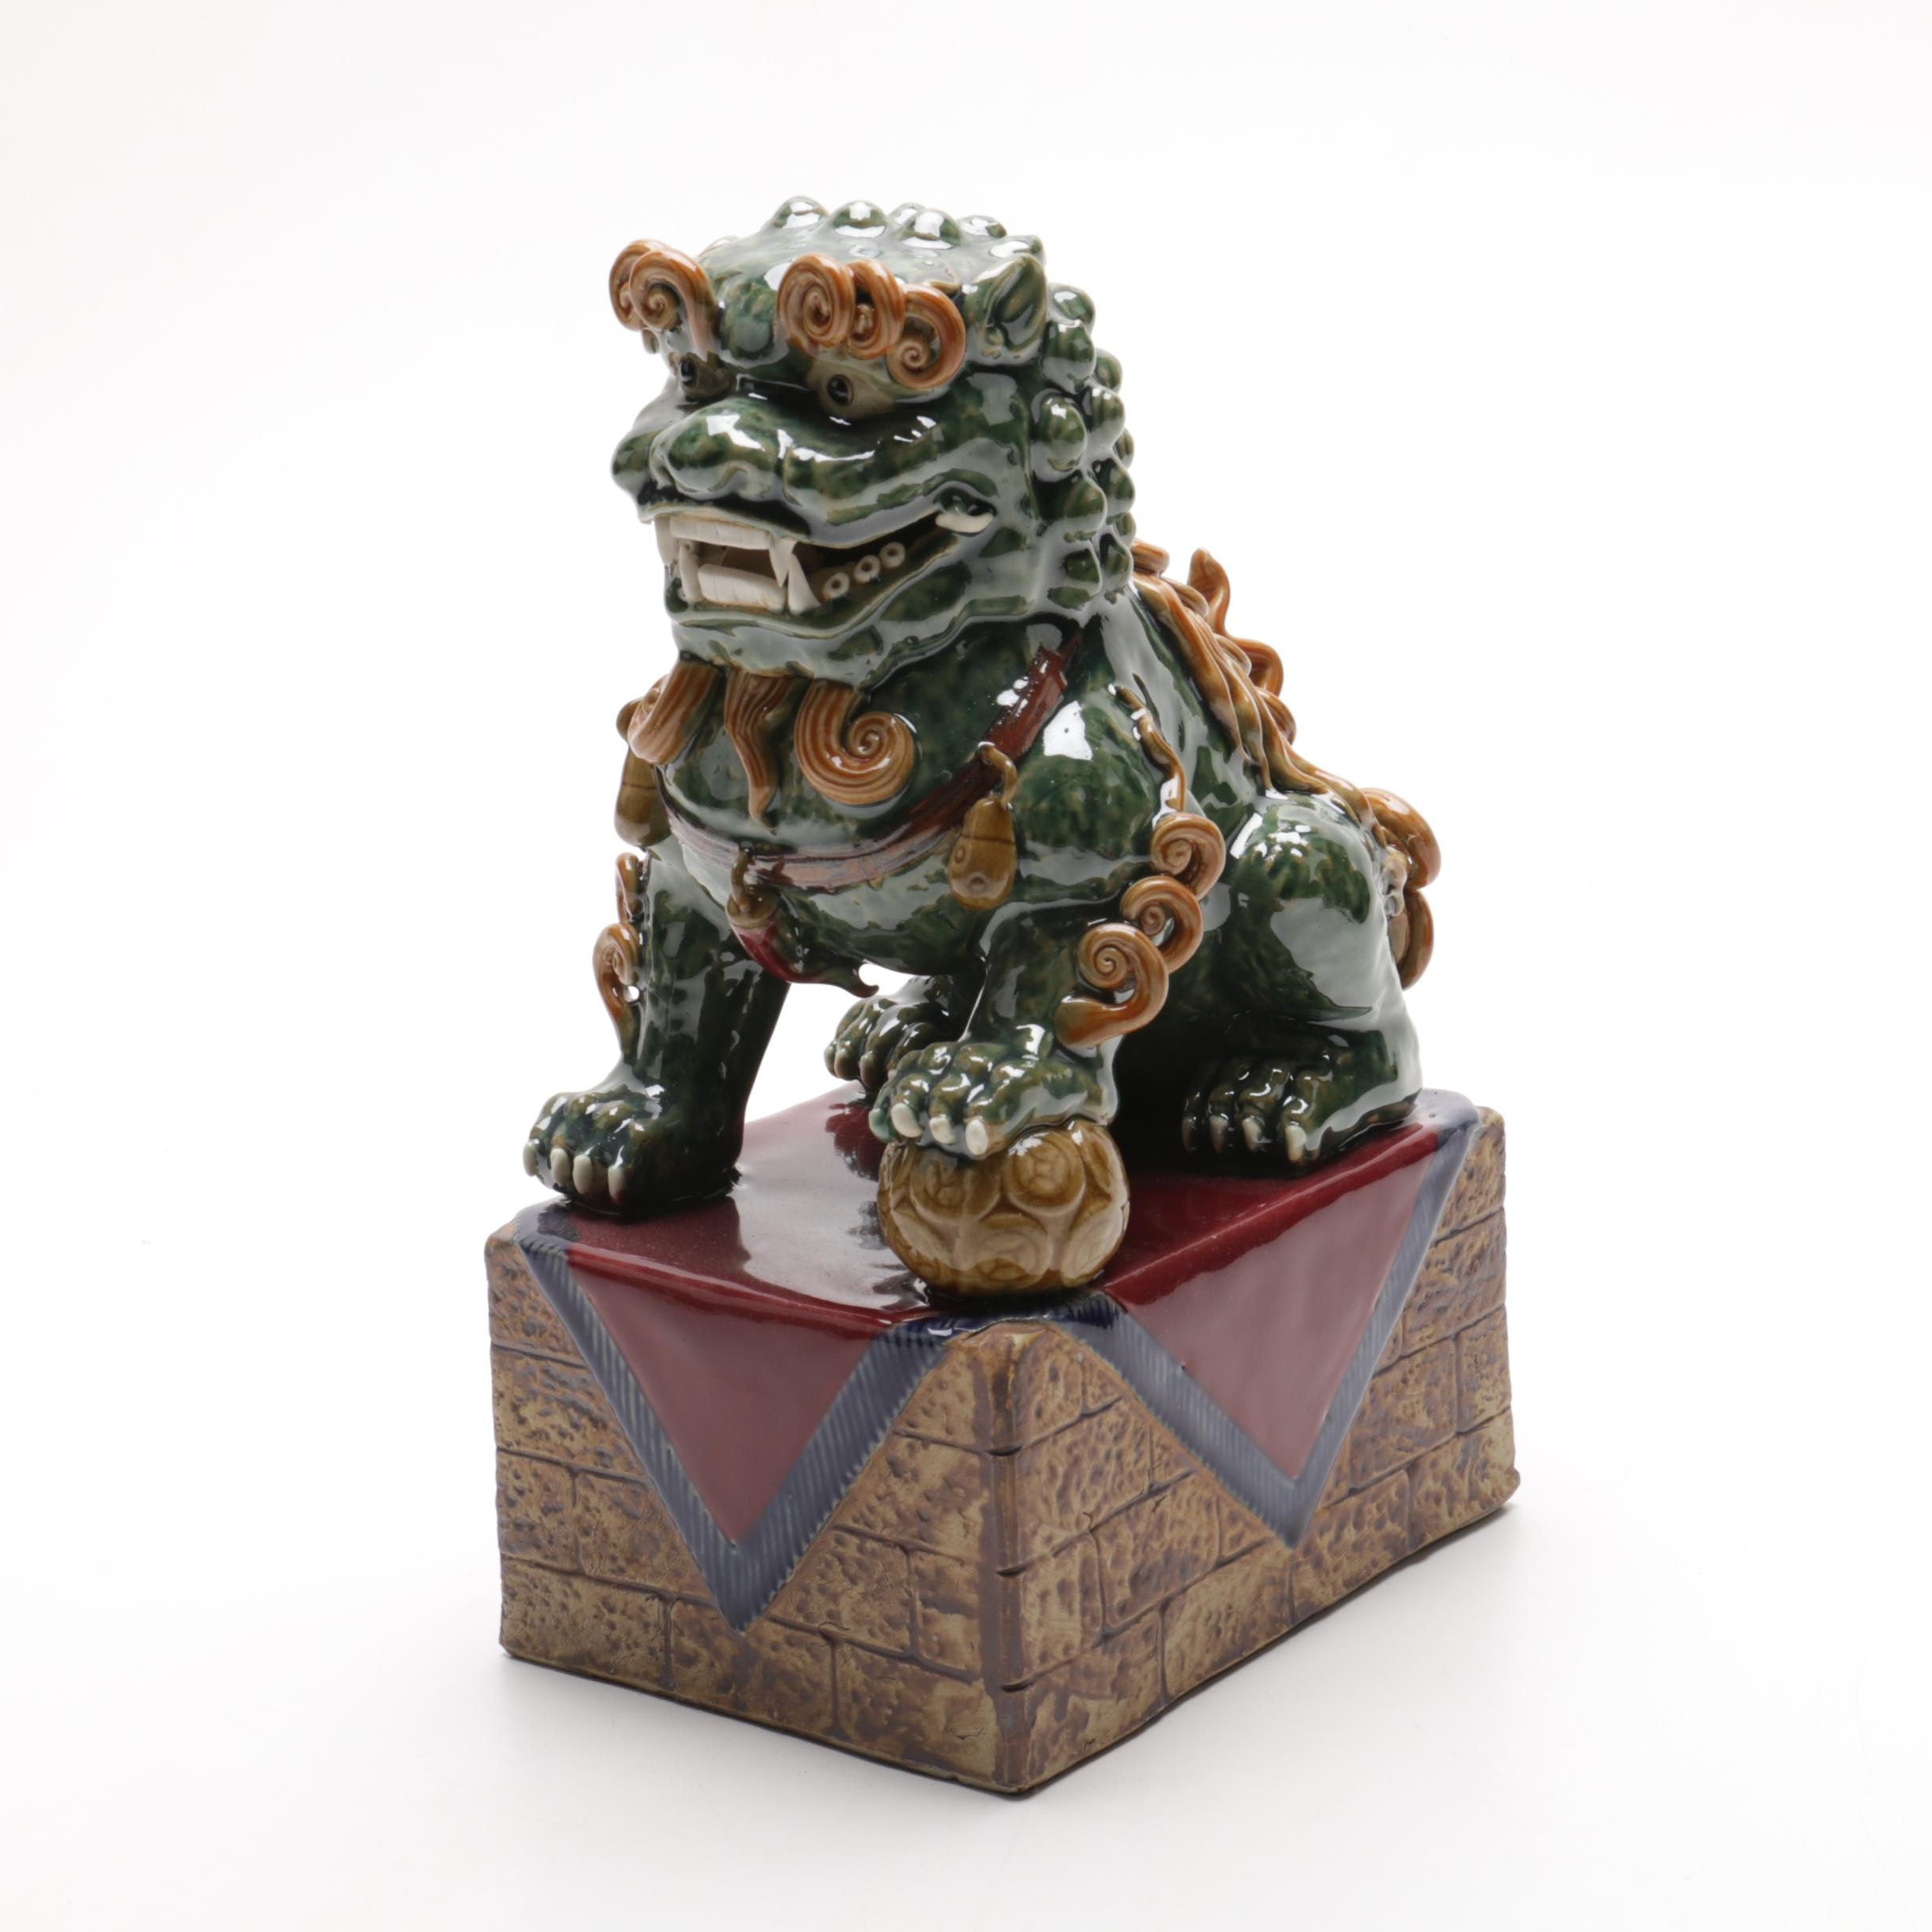 Chinese Style Painted Ceramic Guardian Lion Figurine with High Gloss Finish